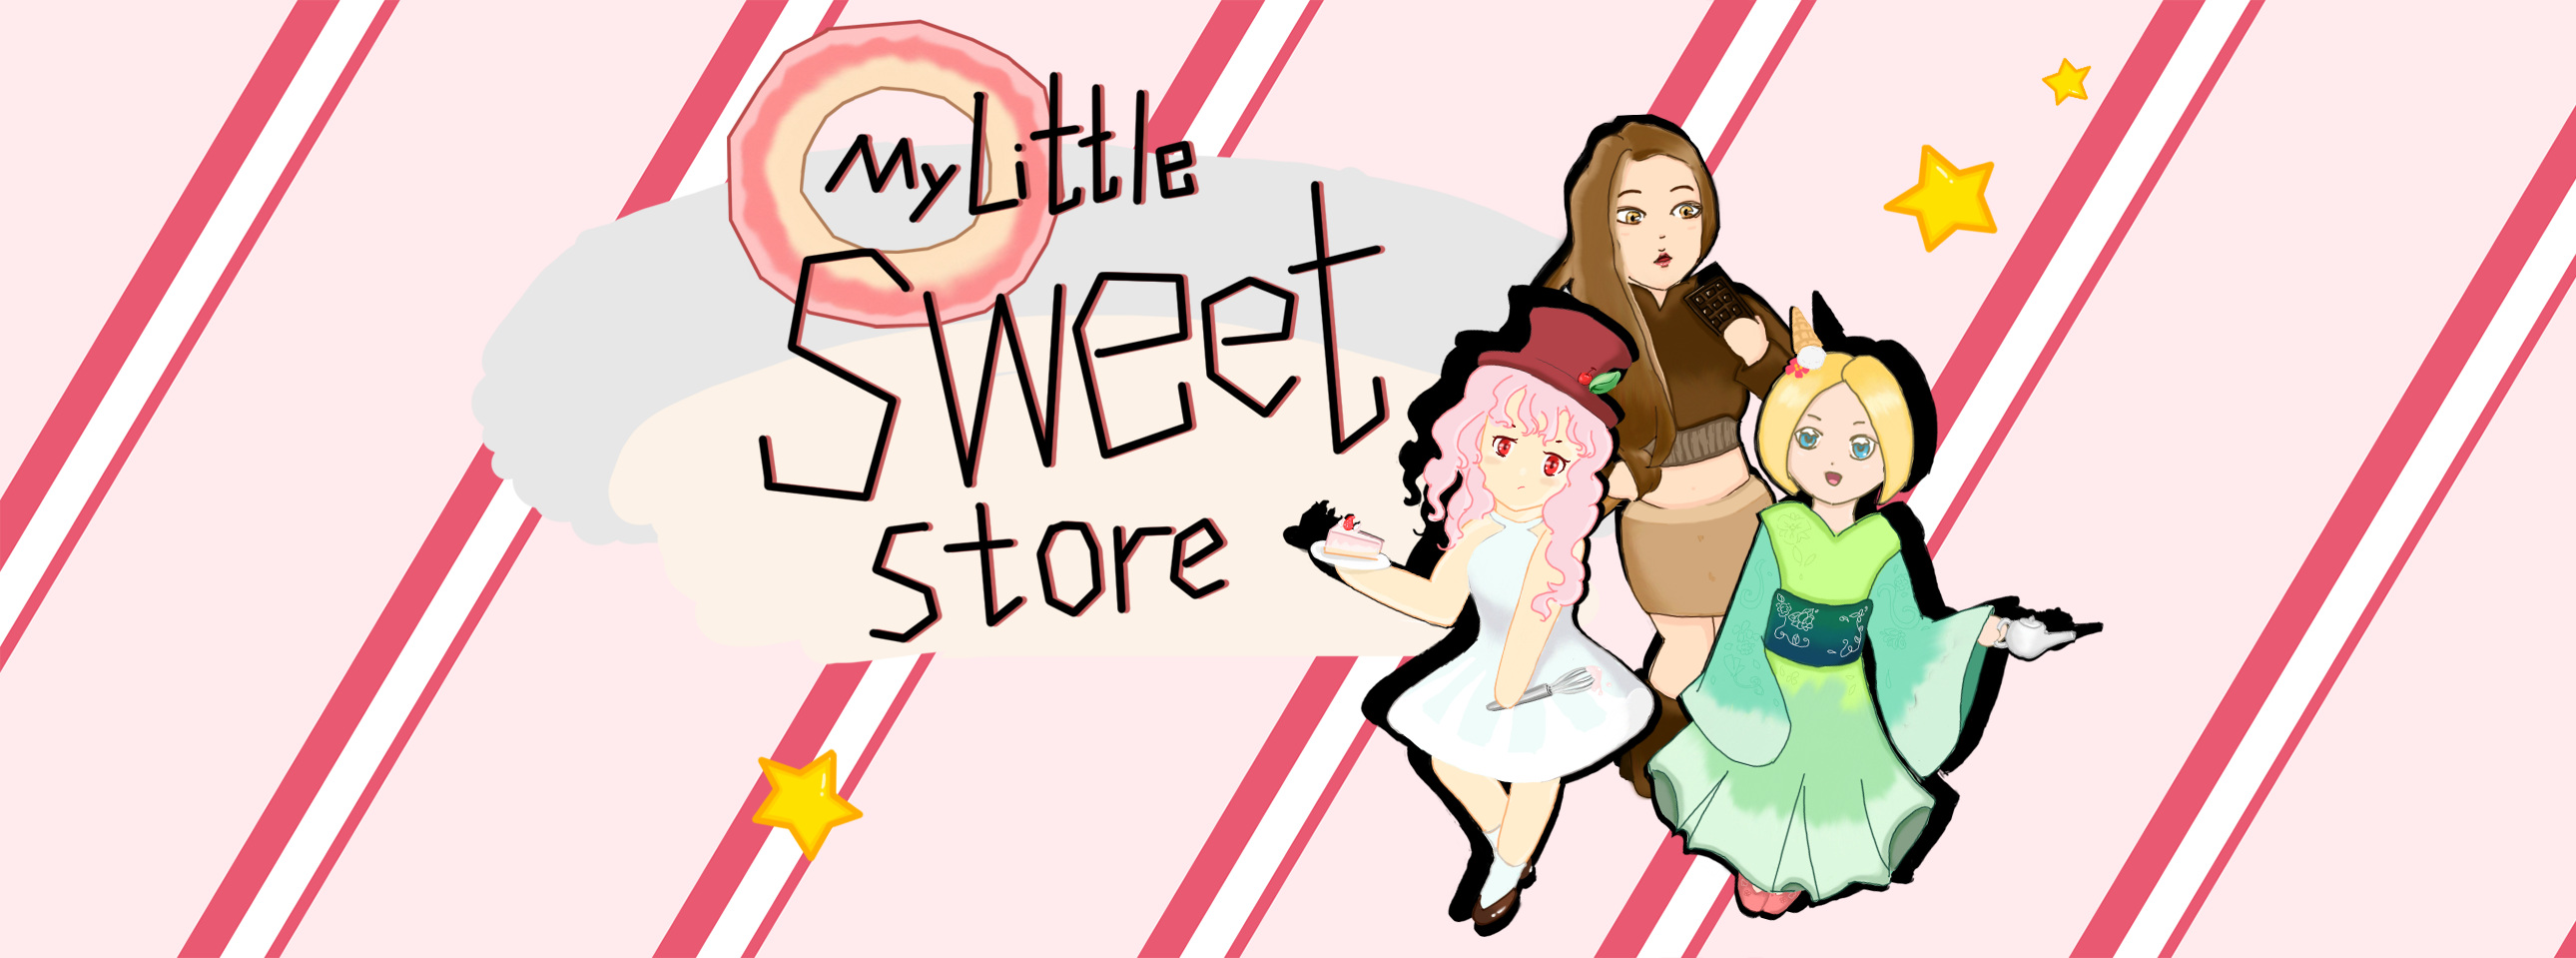 My Little Sweet Store